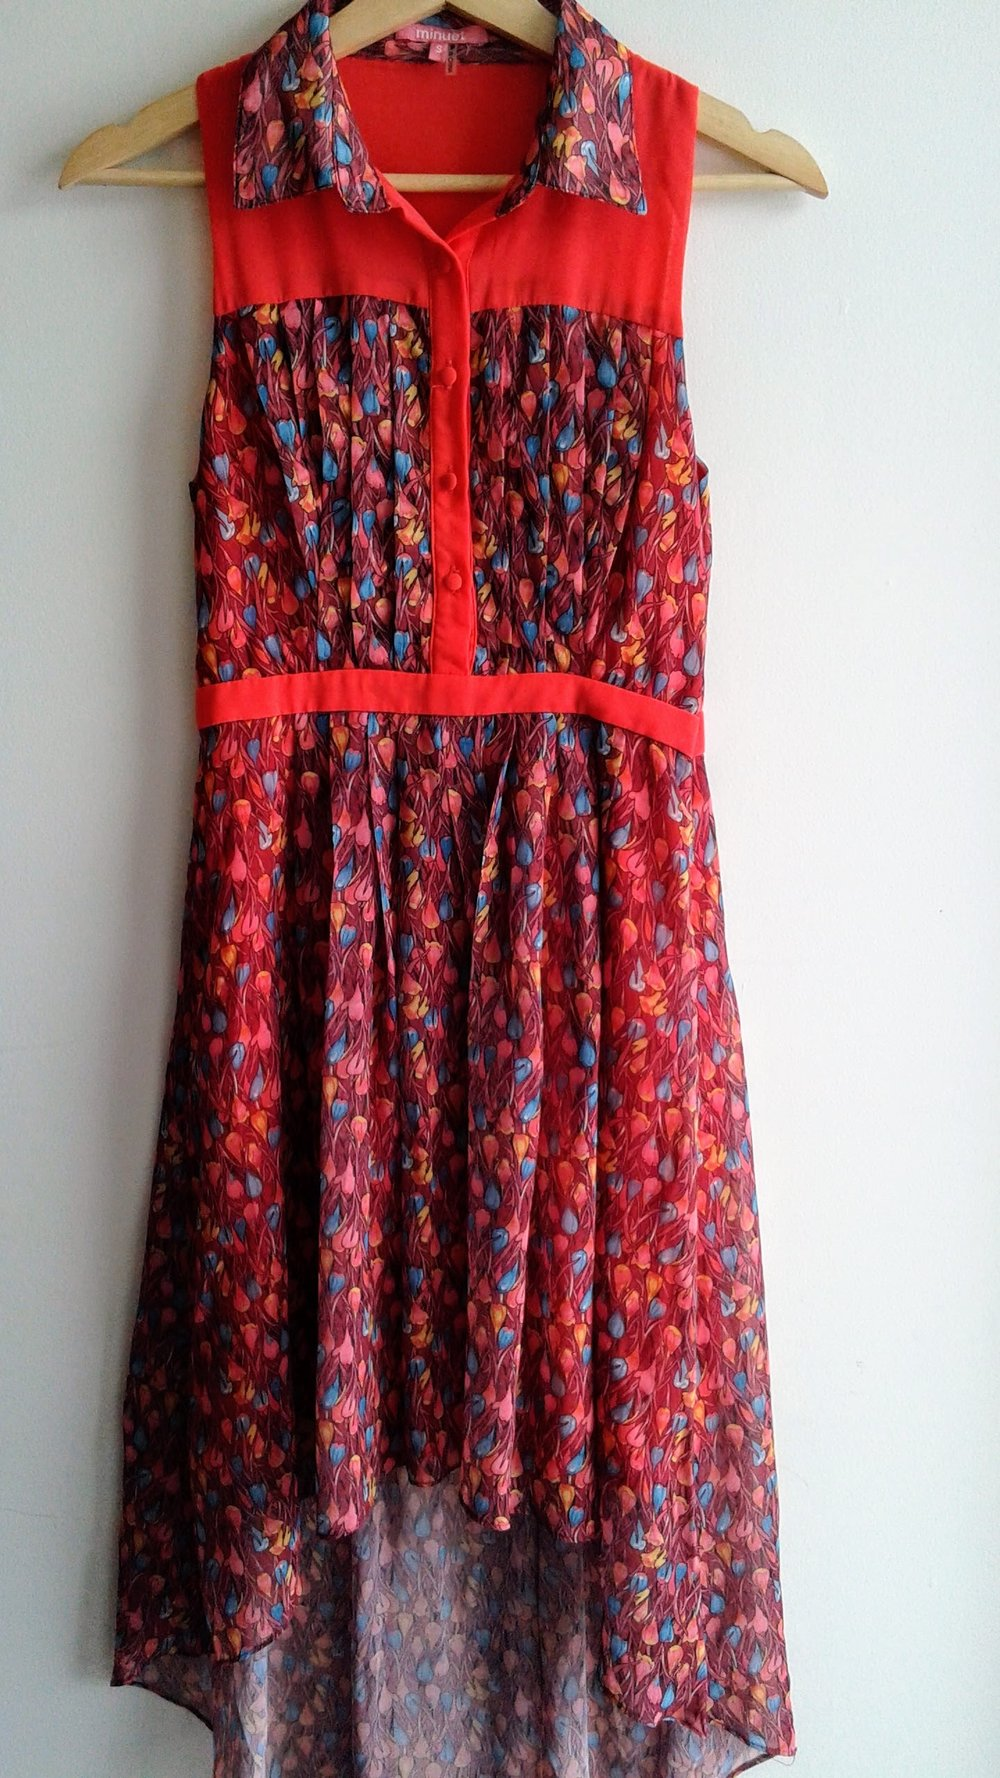 Minuet dress; Size S, $28